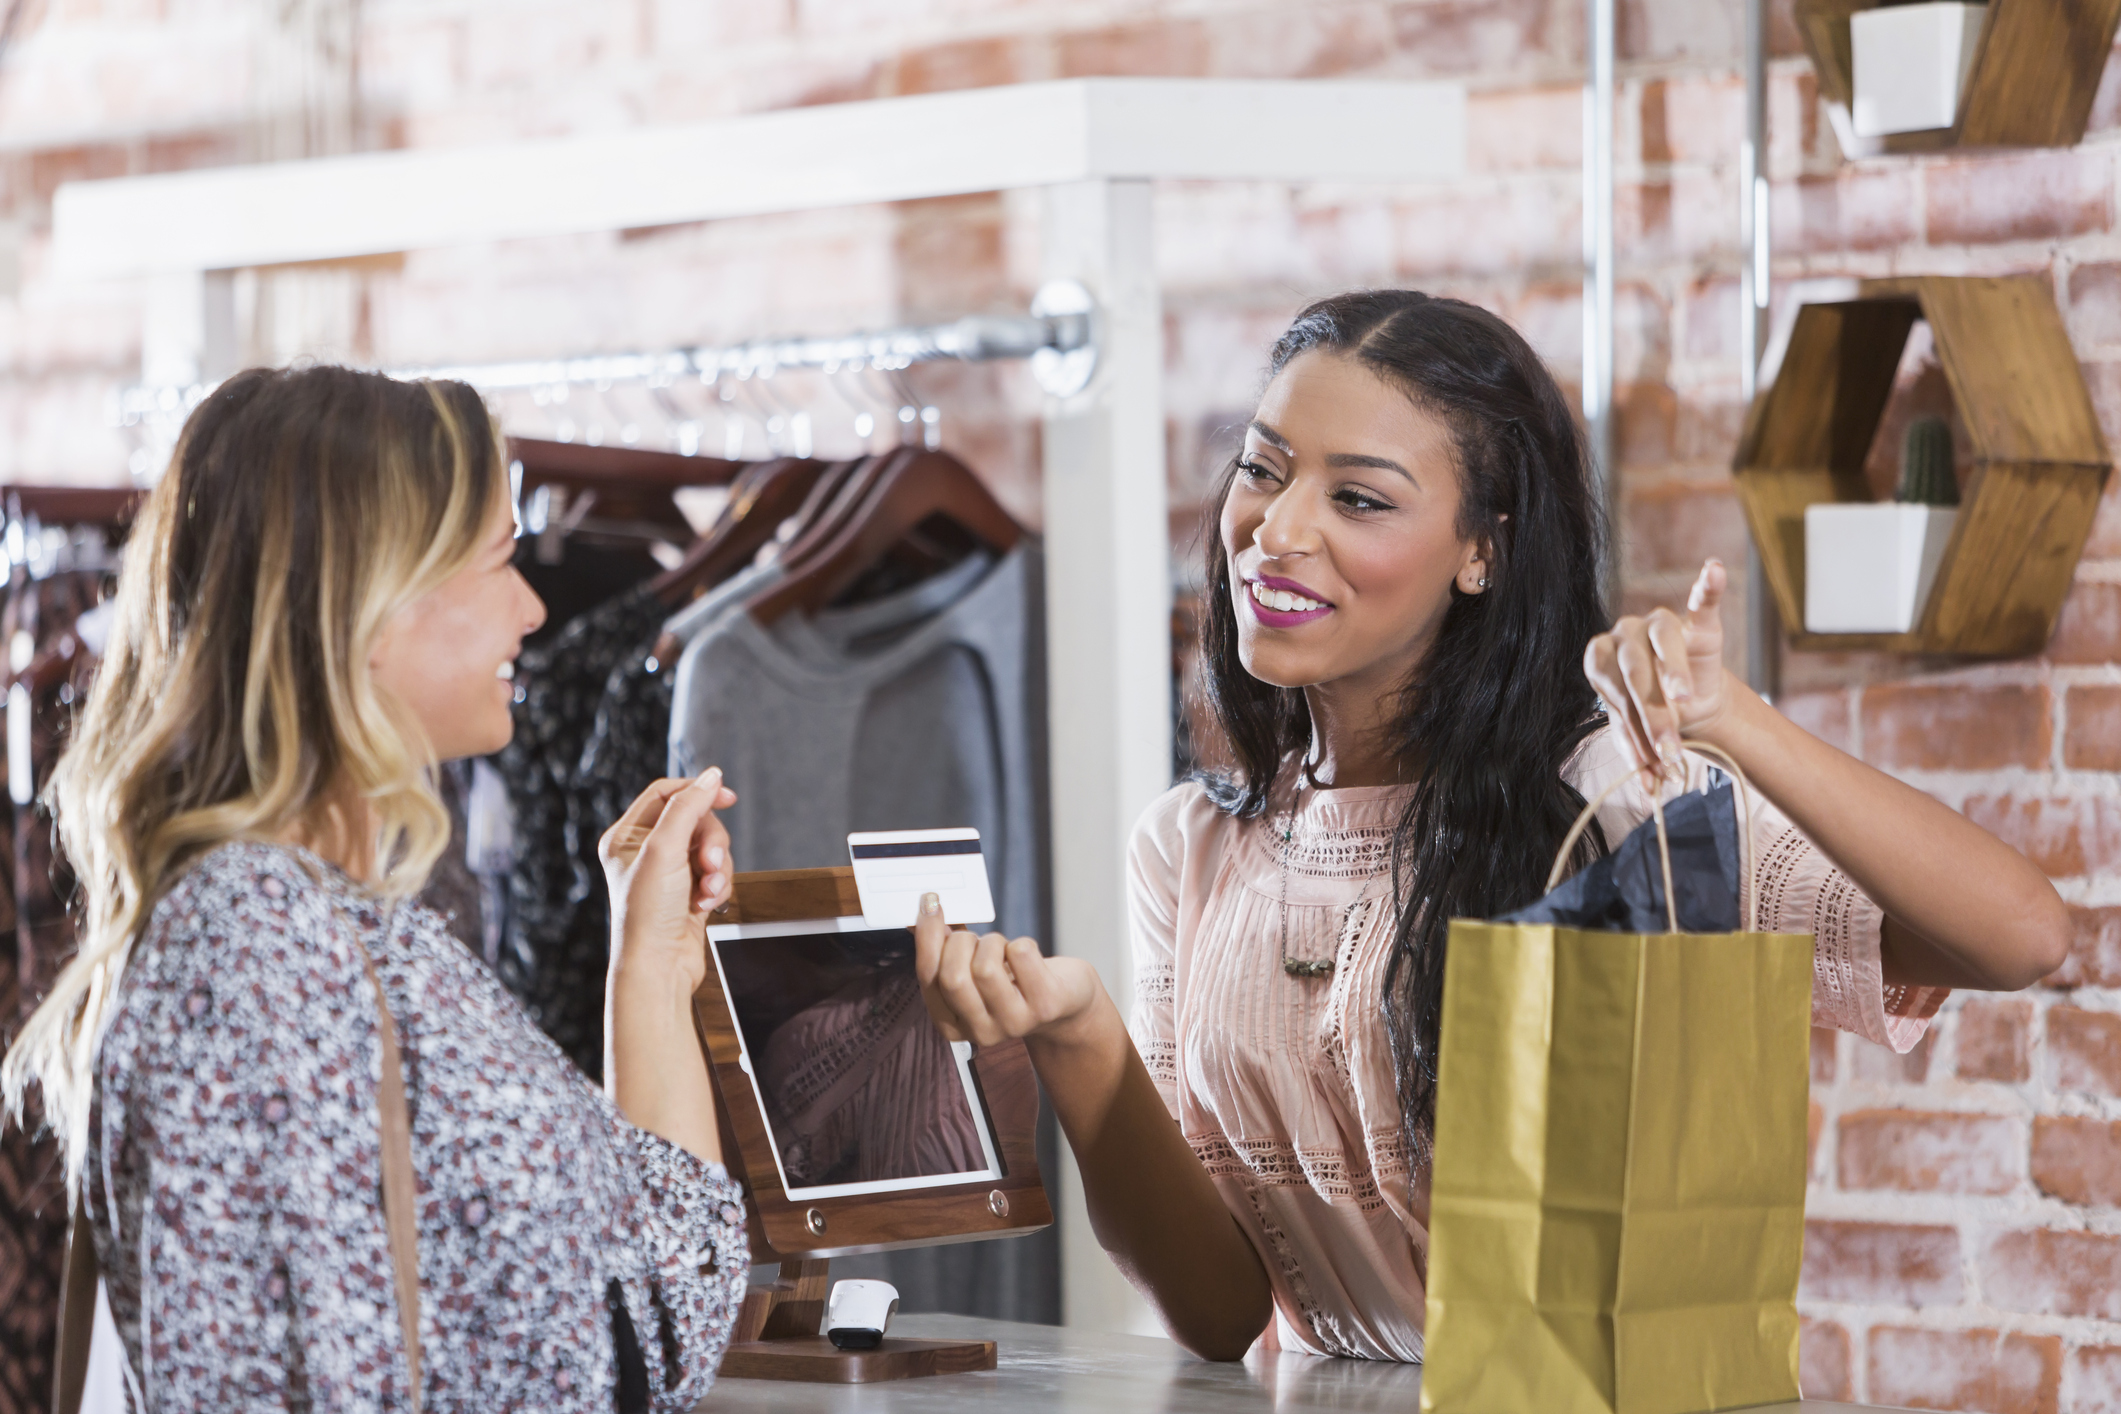 Image: iStock© - Cashier helping customer at checkout counter of store